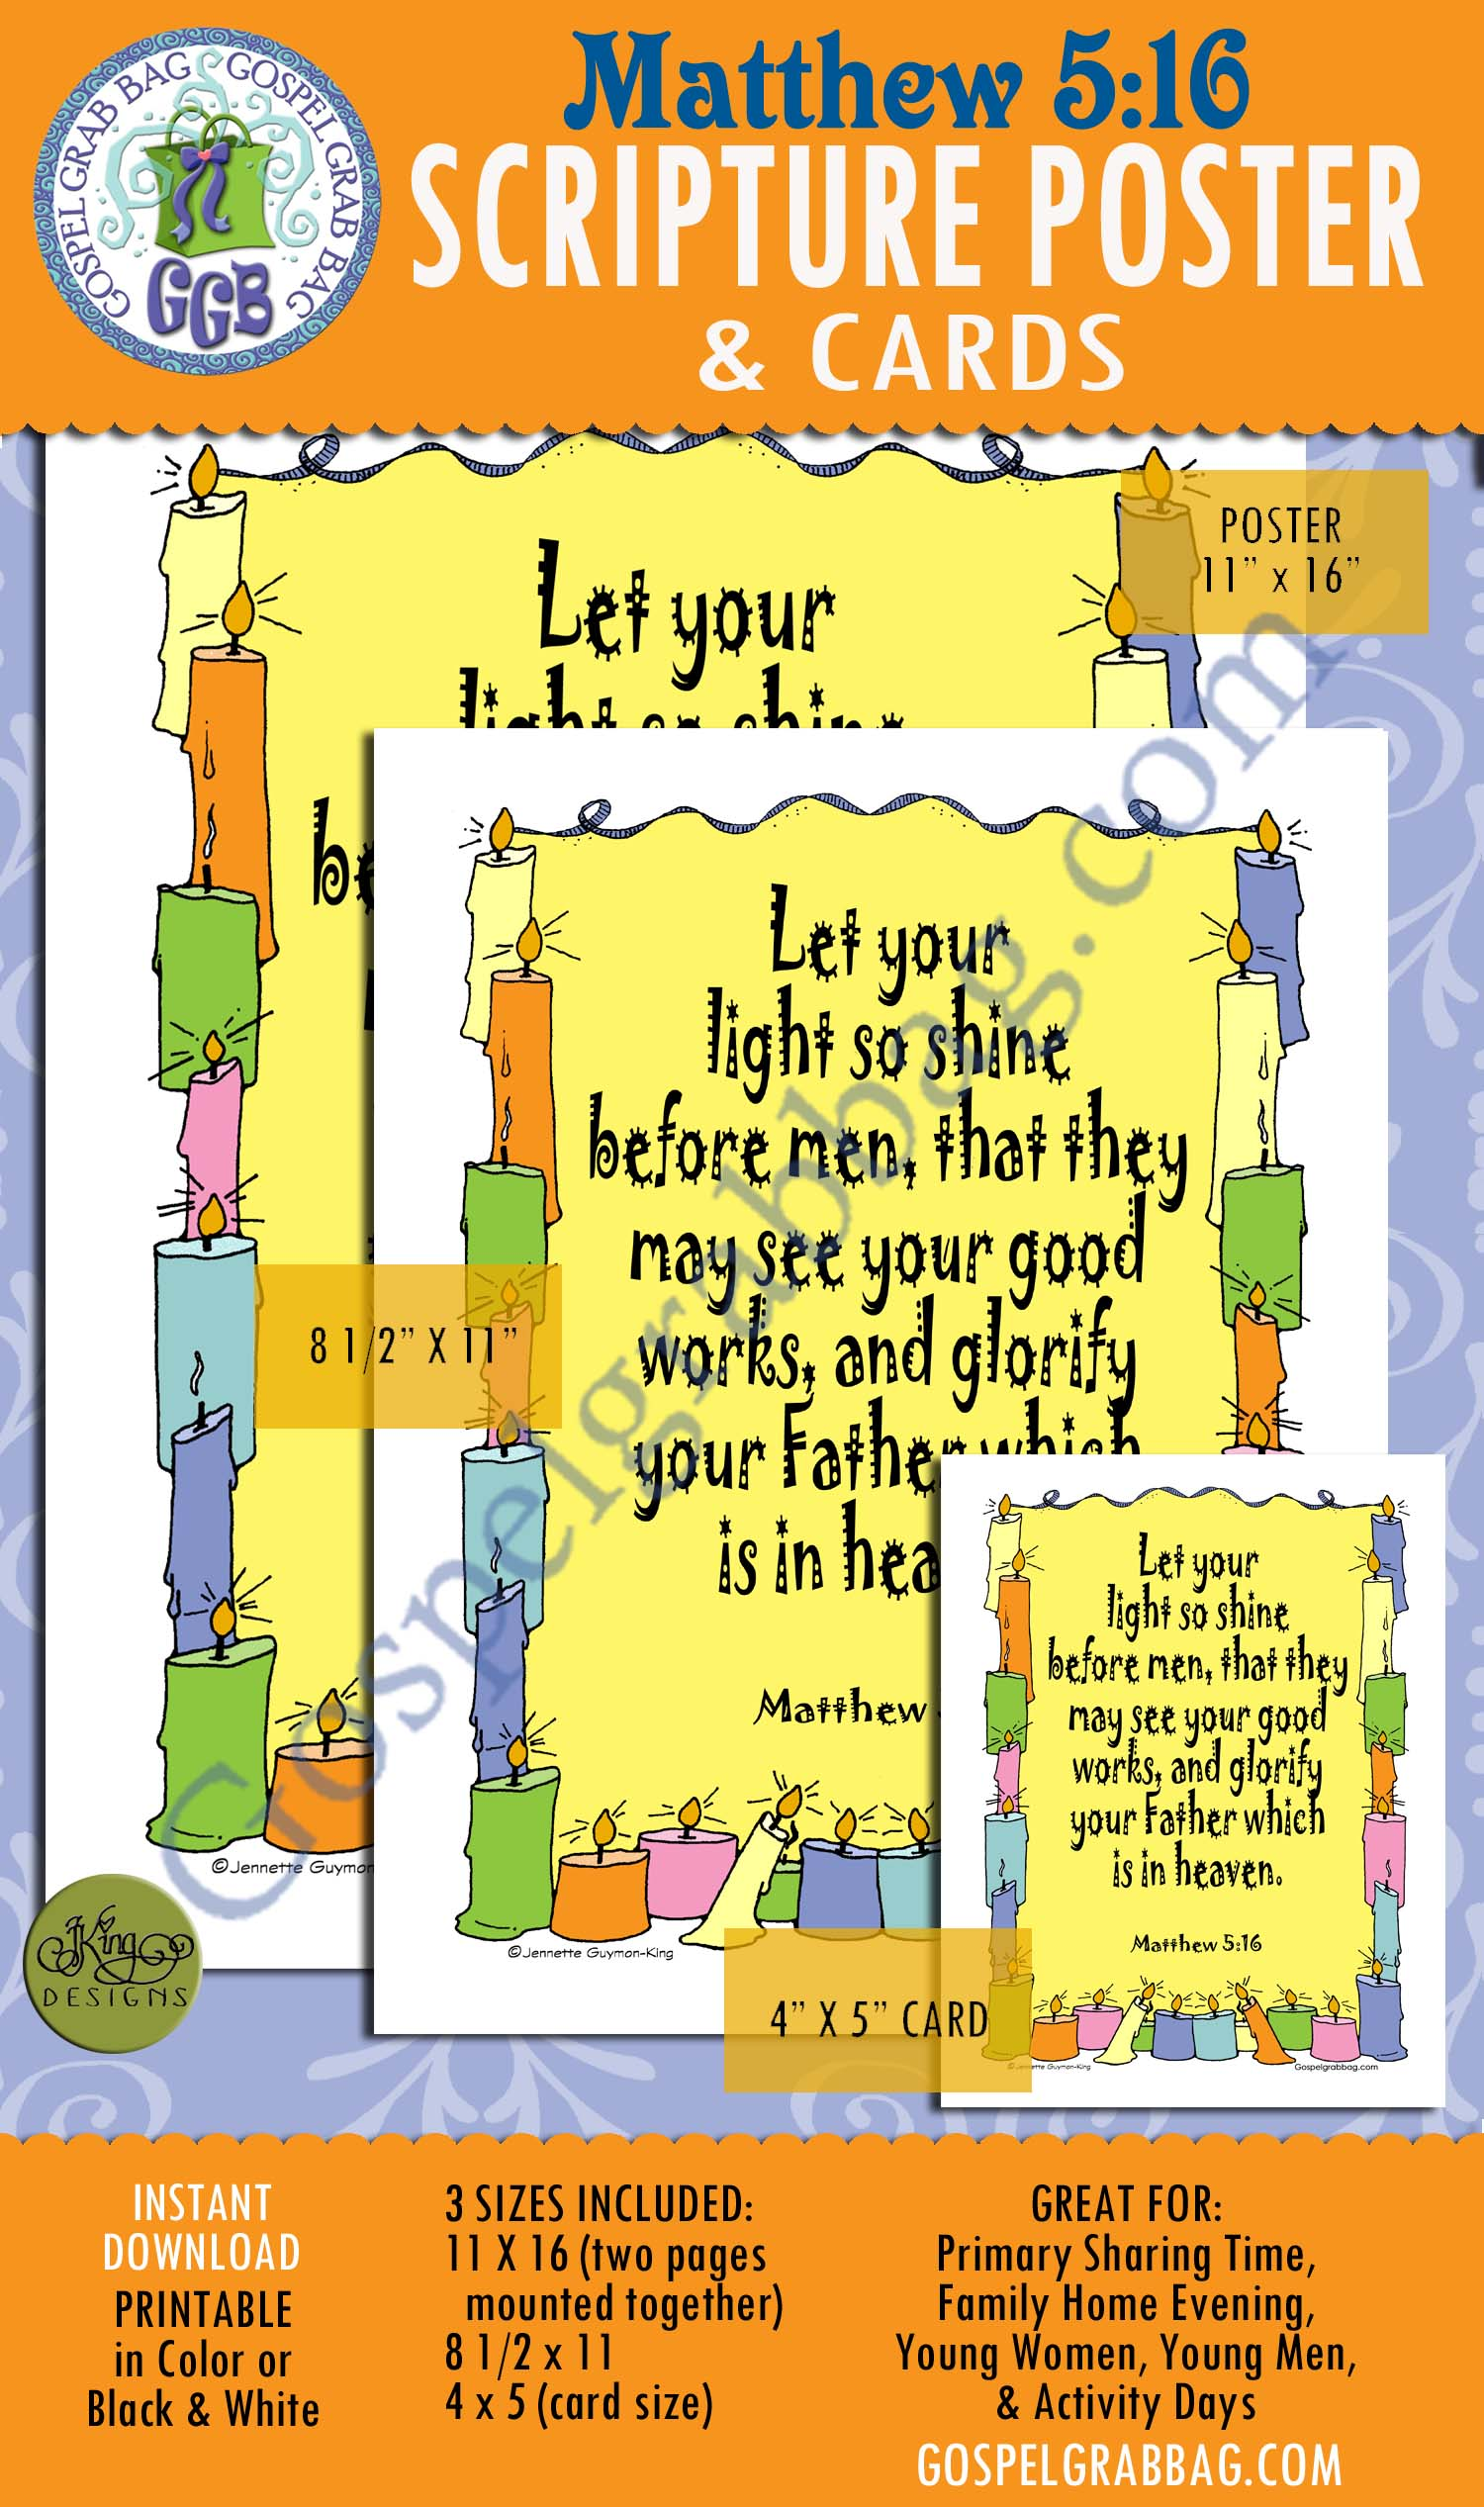 Matthew 5:16 SCRIPTURE POSTER & CARDS, Primary Sharing Time, Come Follow Me, Family Home Evening, example, fellowship, service, commandments, GospelGrabBag.com